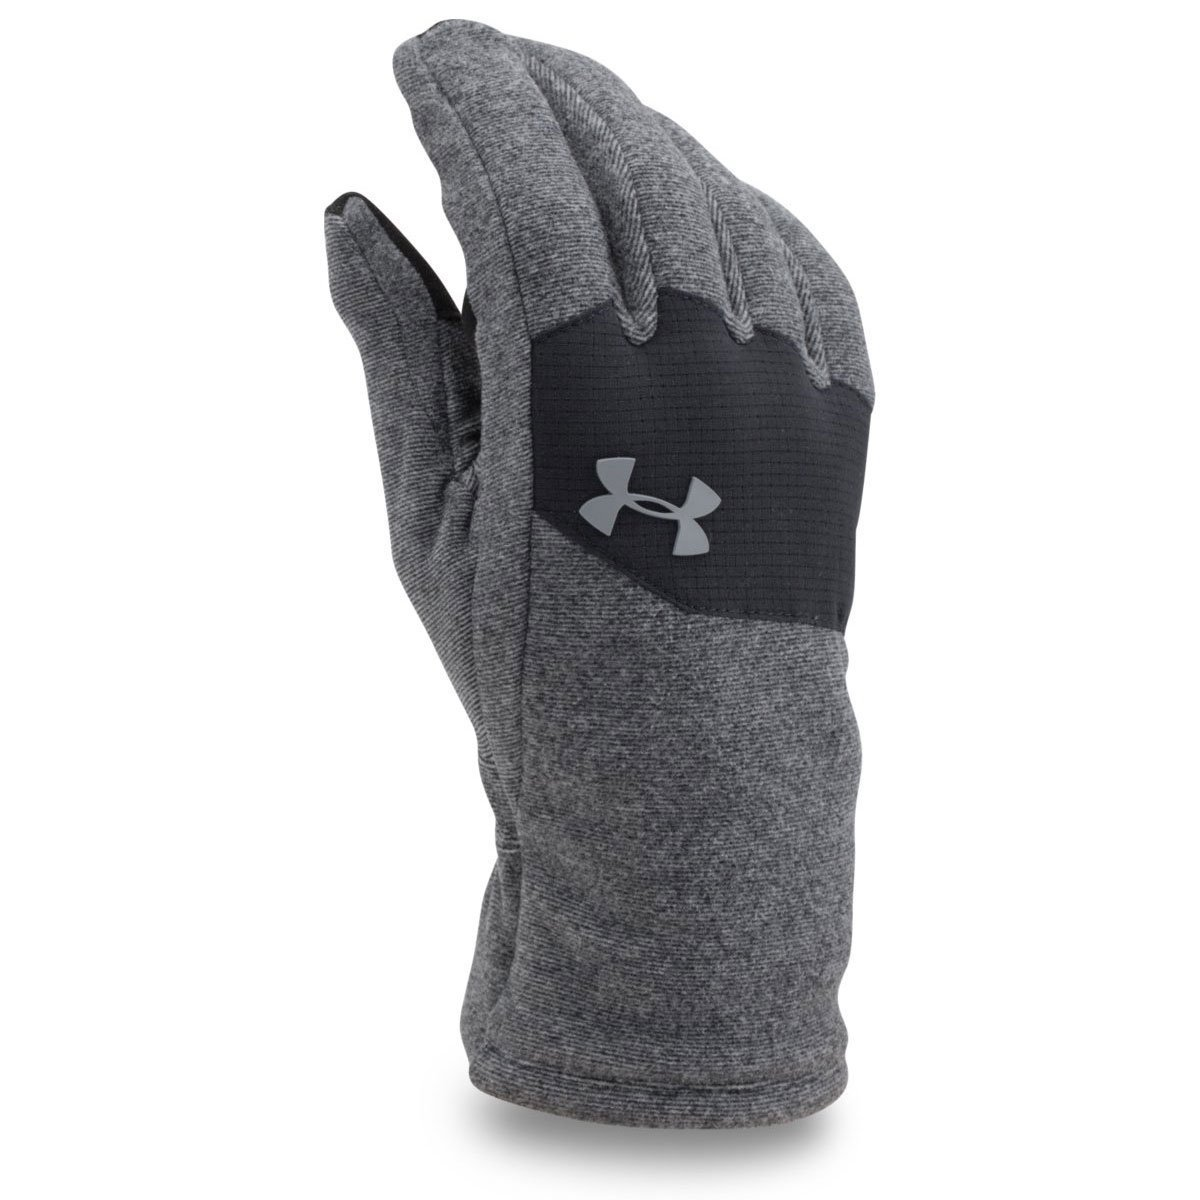 Excel Fitness Gloves: Under Armour ColdGear Infrared Fleece Gloves Review